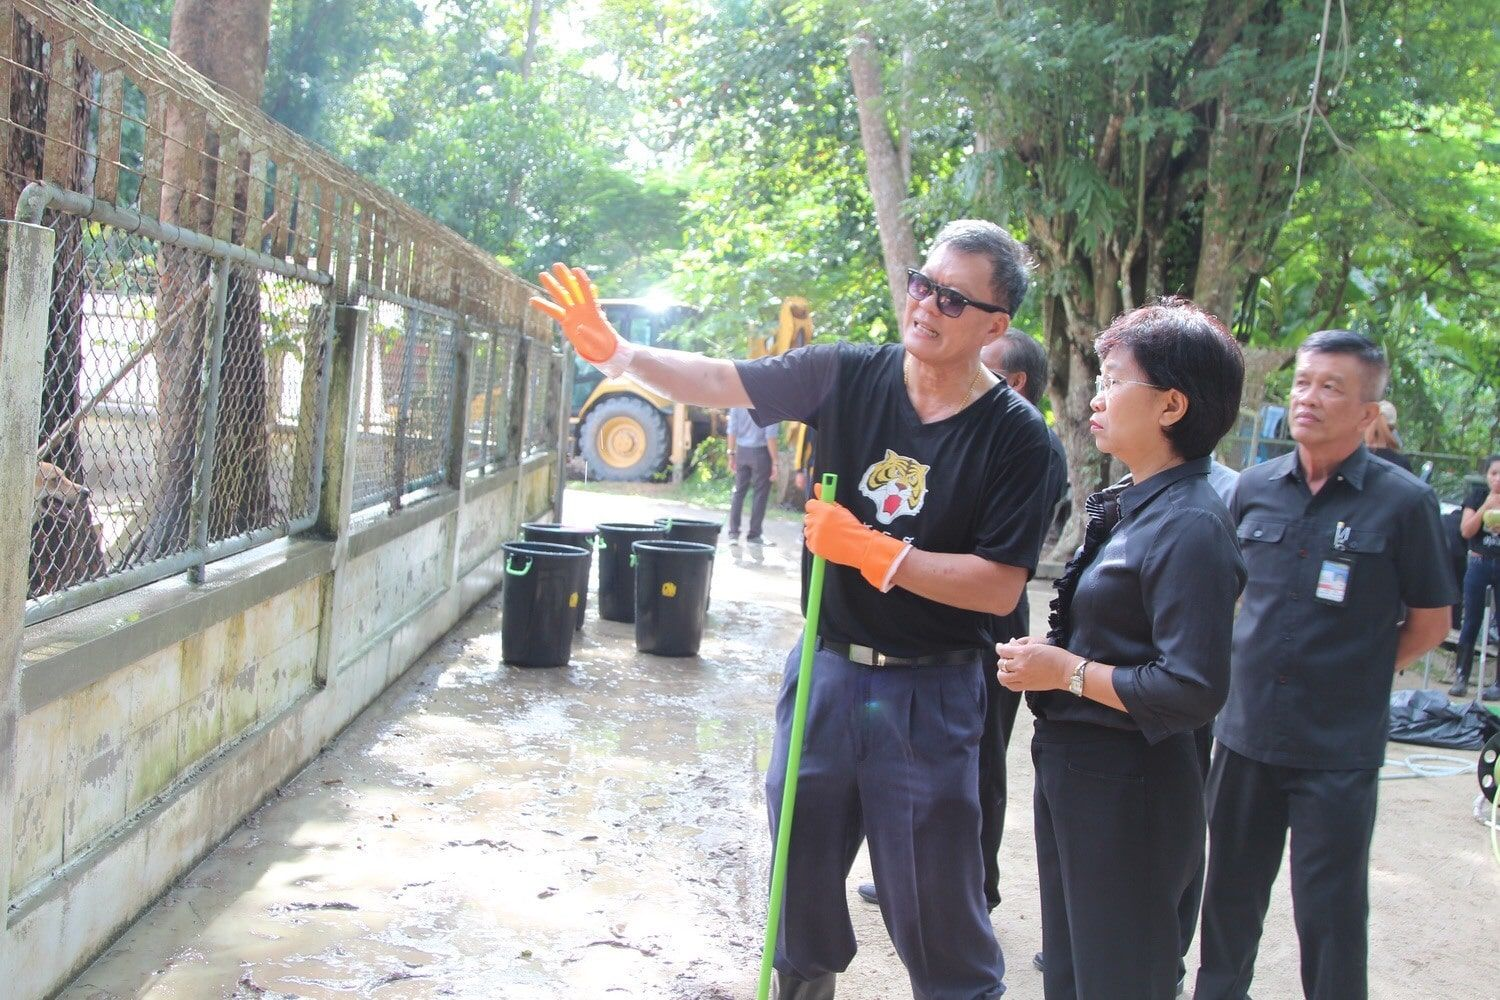 Phuket's main soi dog shelter in Thalang gets a make-over | The Thaiger